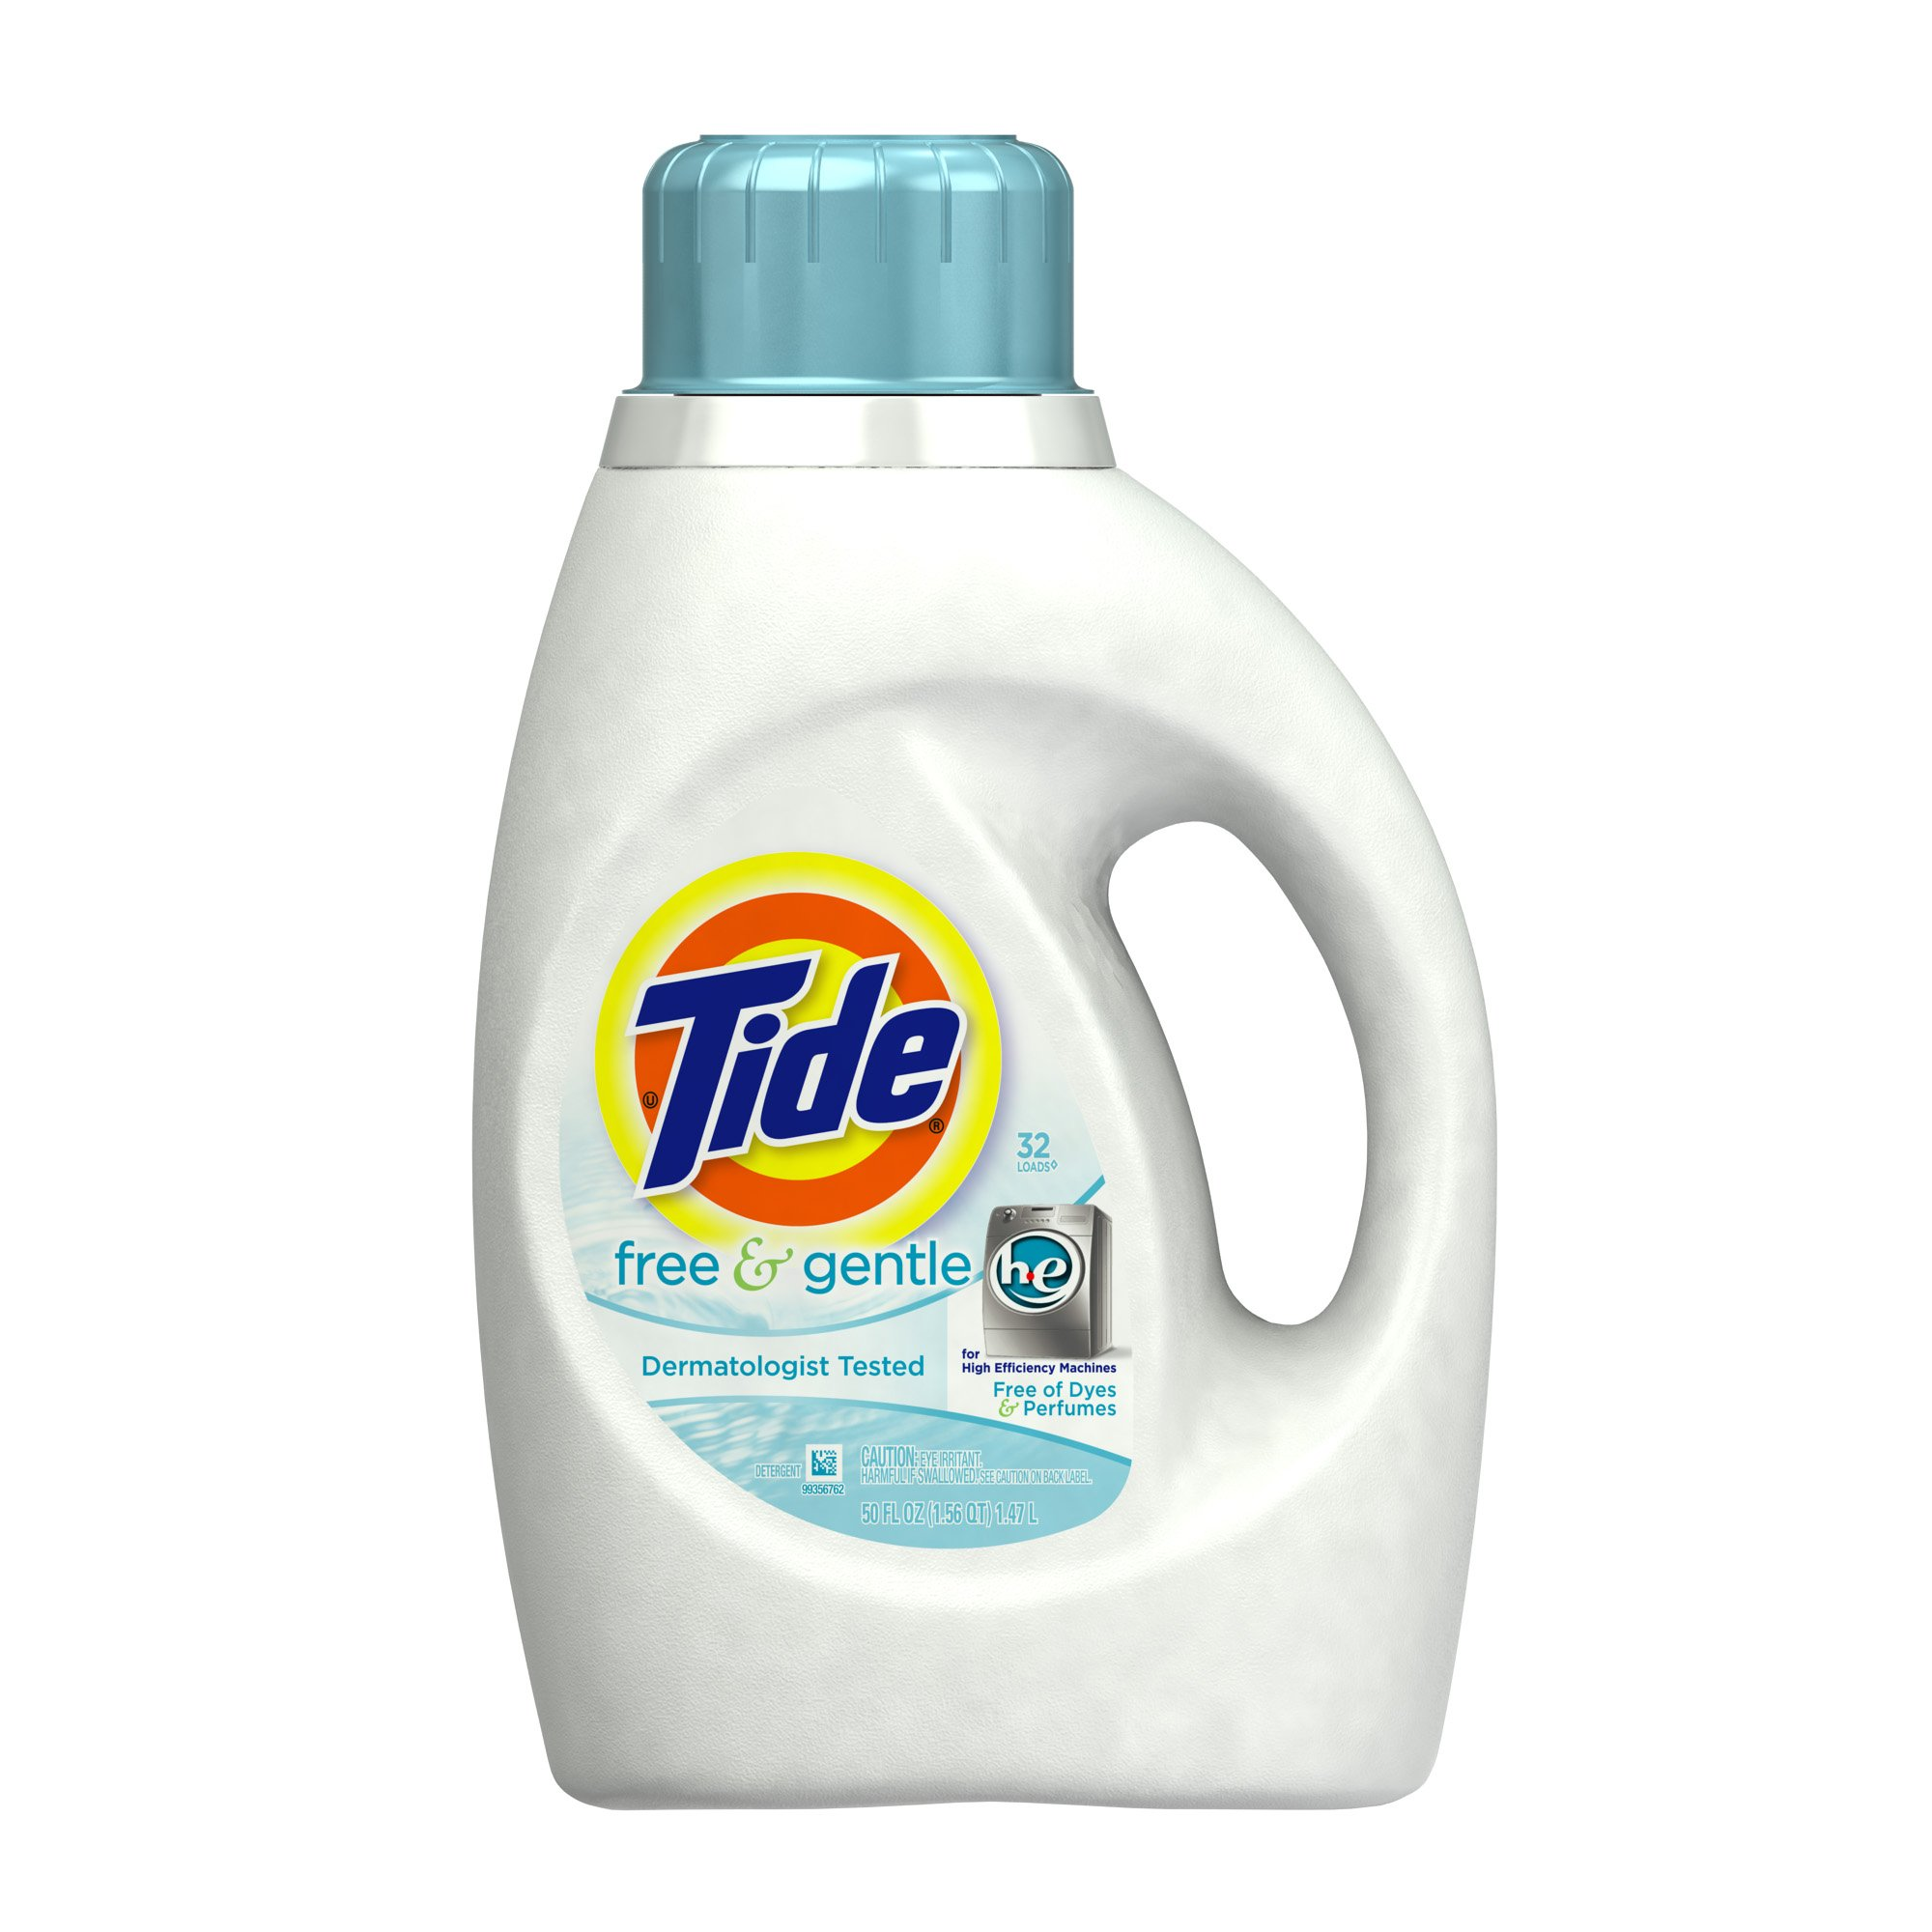 Tide Free and Gentle High Efficiency Unscented Detergent, 50 Ounce by Tide